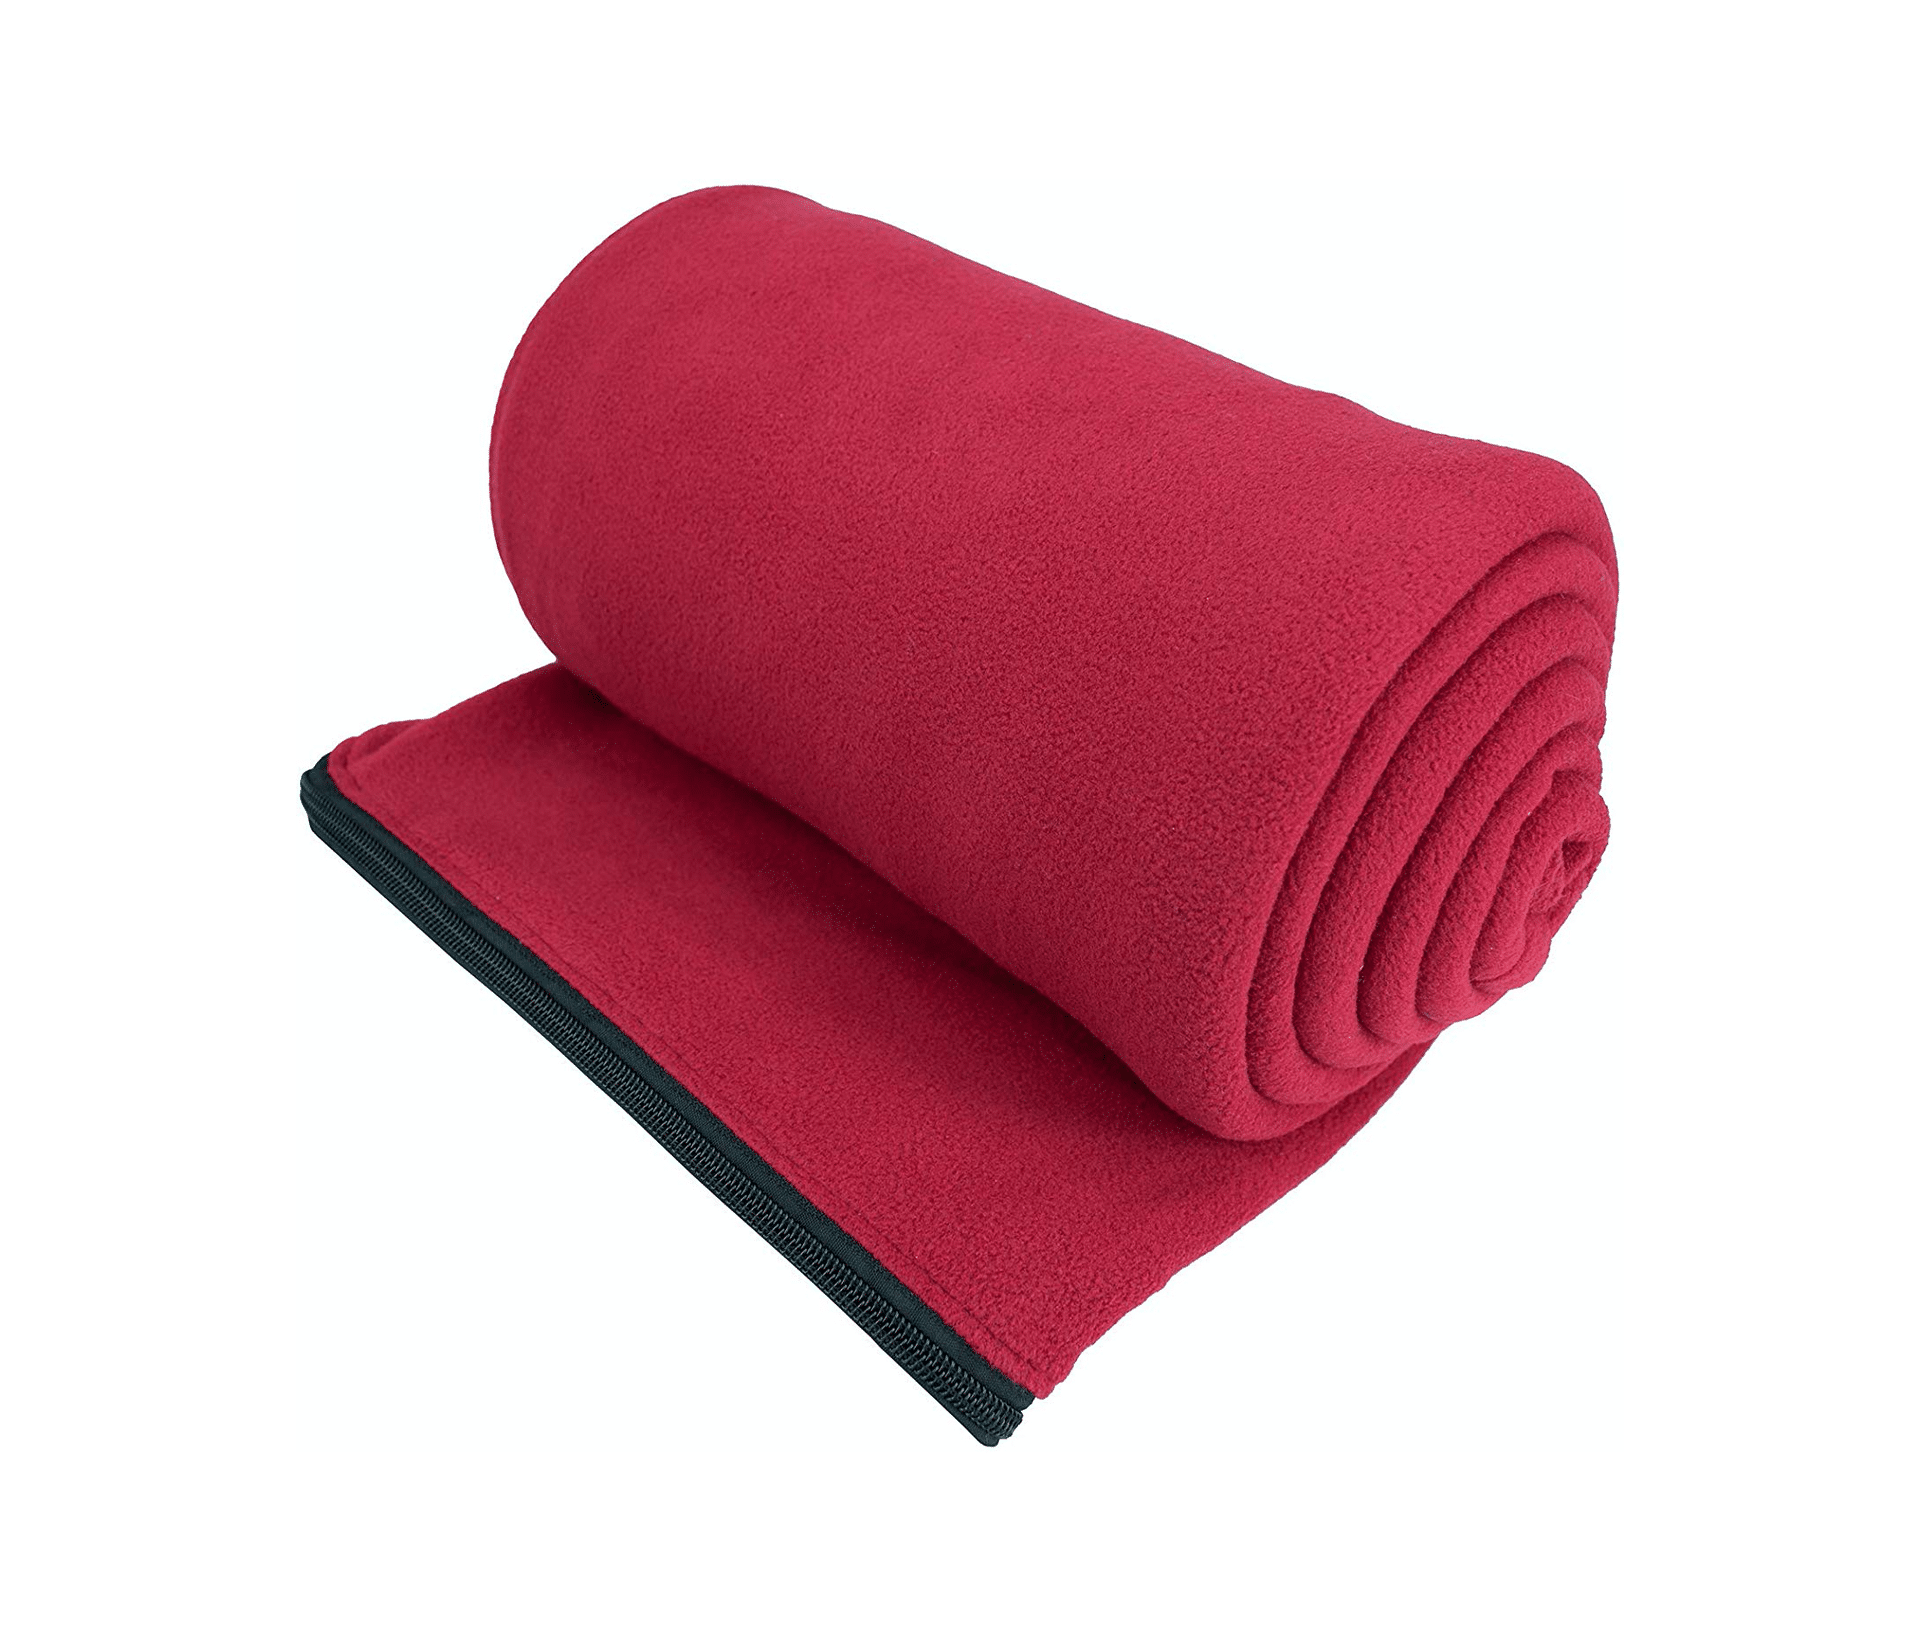 OSAGE RIVER Sleeping Bag Liner